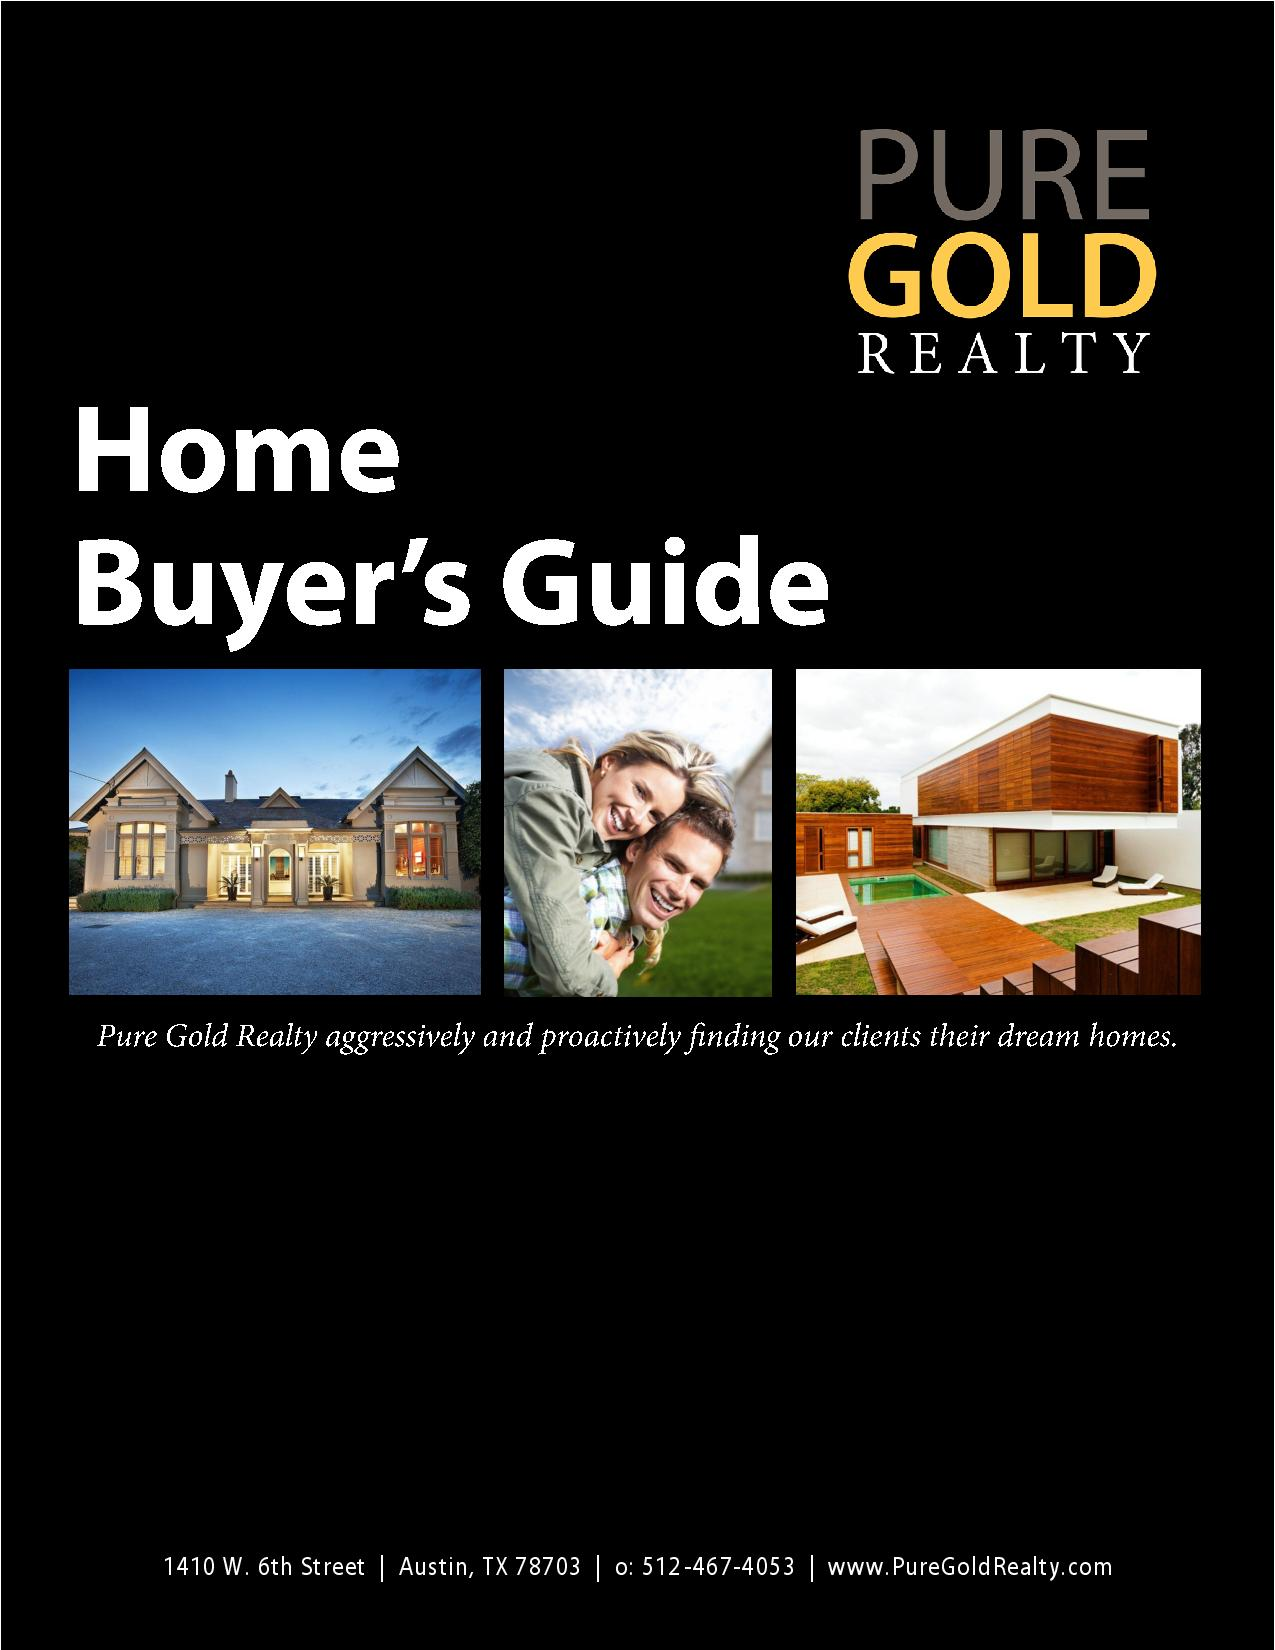 Pure Gold Realty Home Buyer's Guide